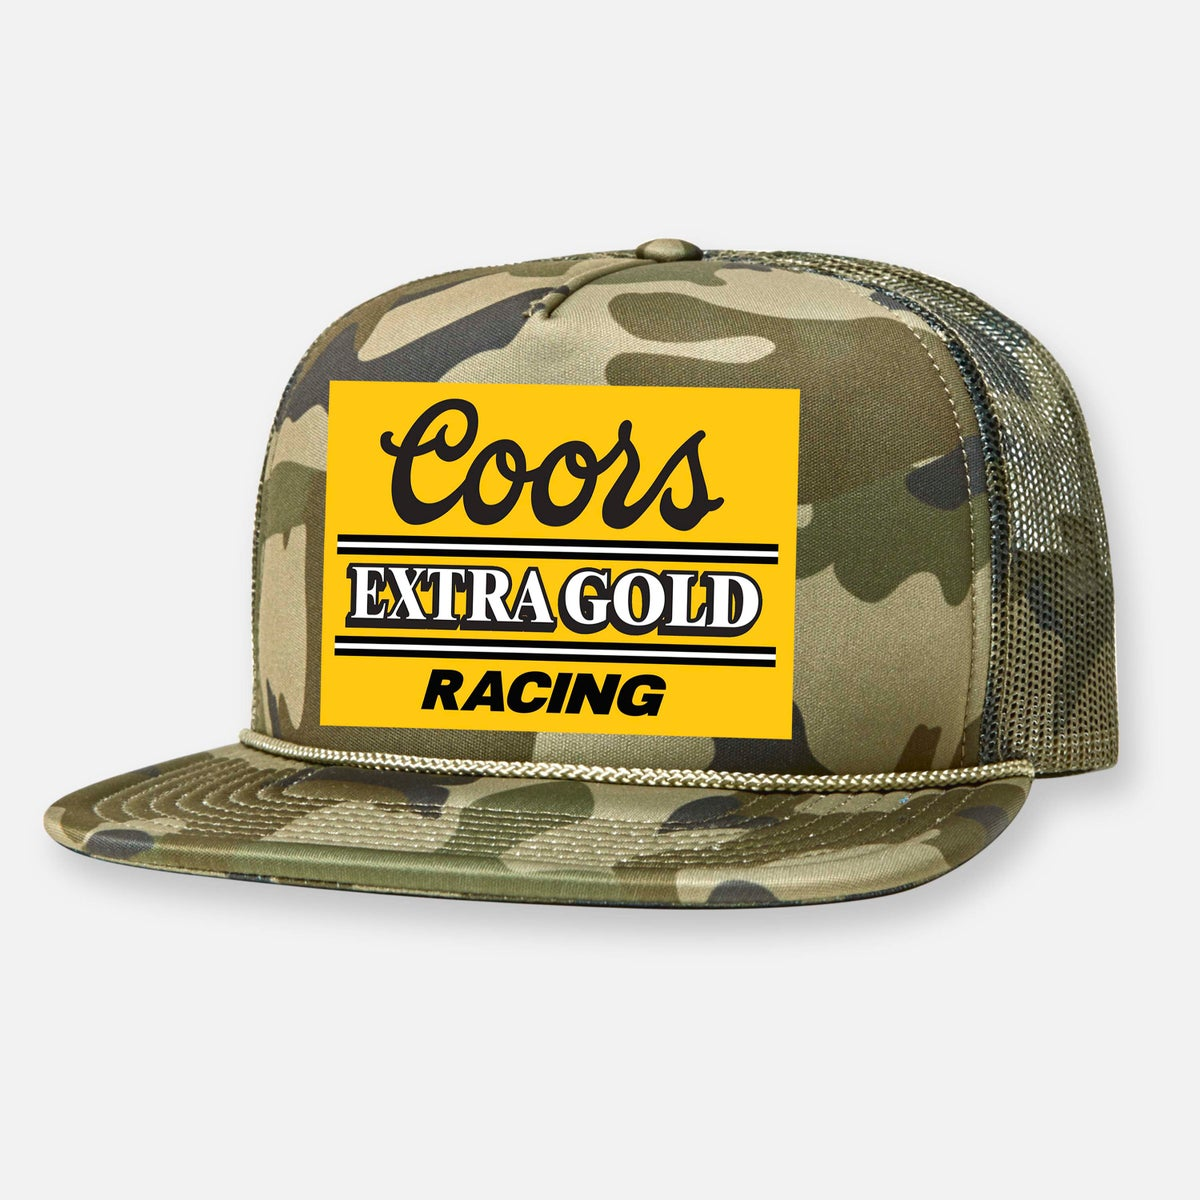 Image of COORS EXTRA GOLD RACING HAT